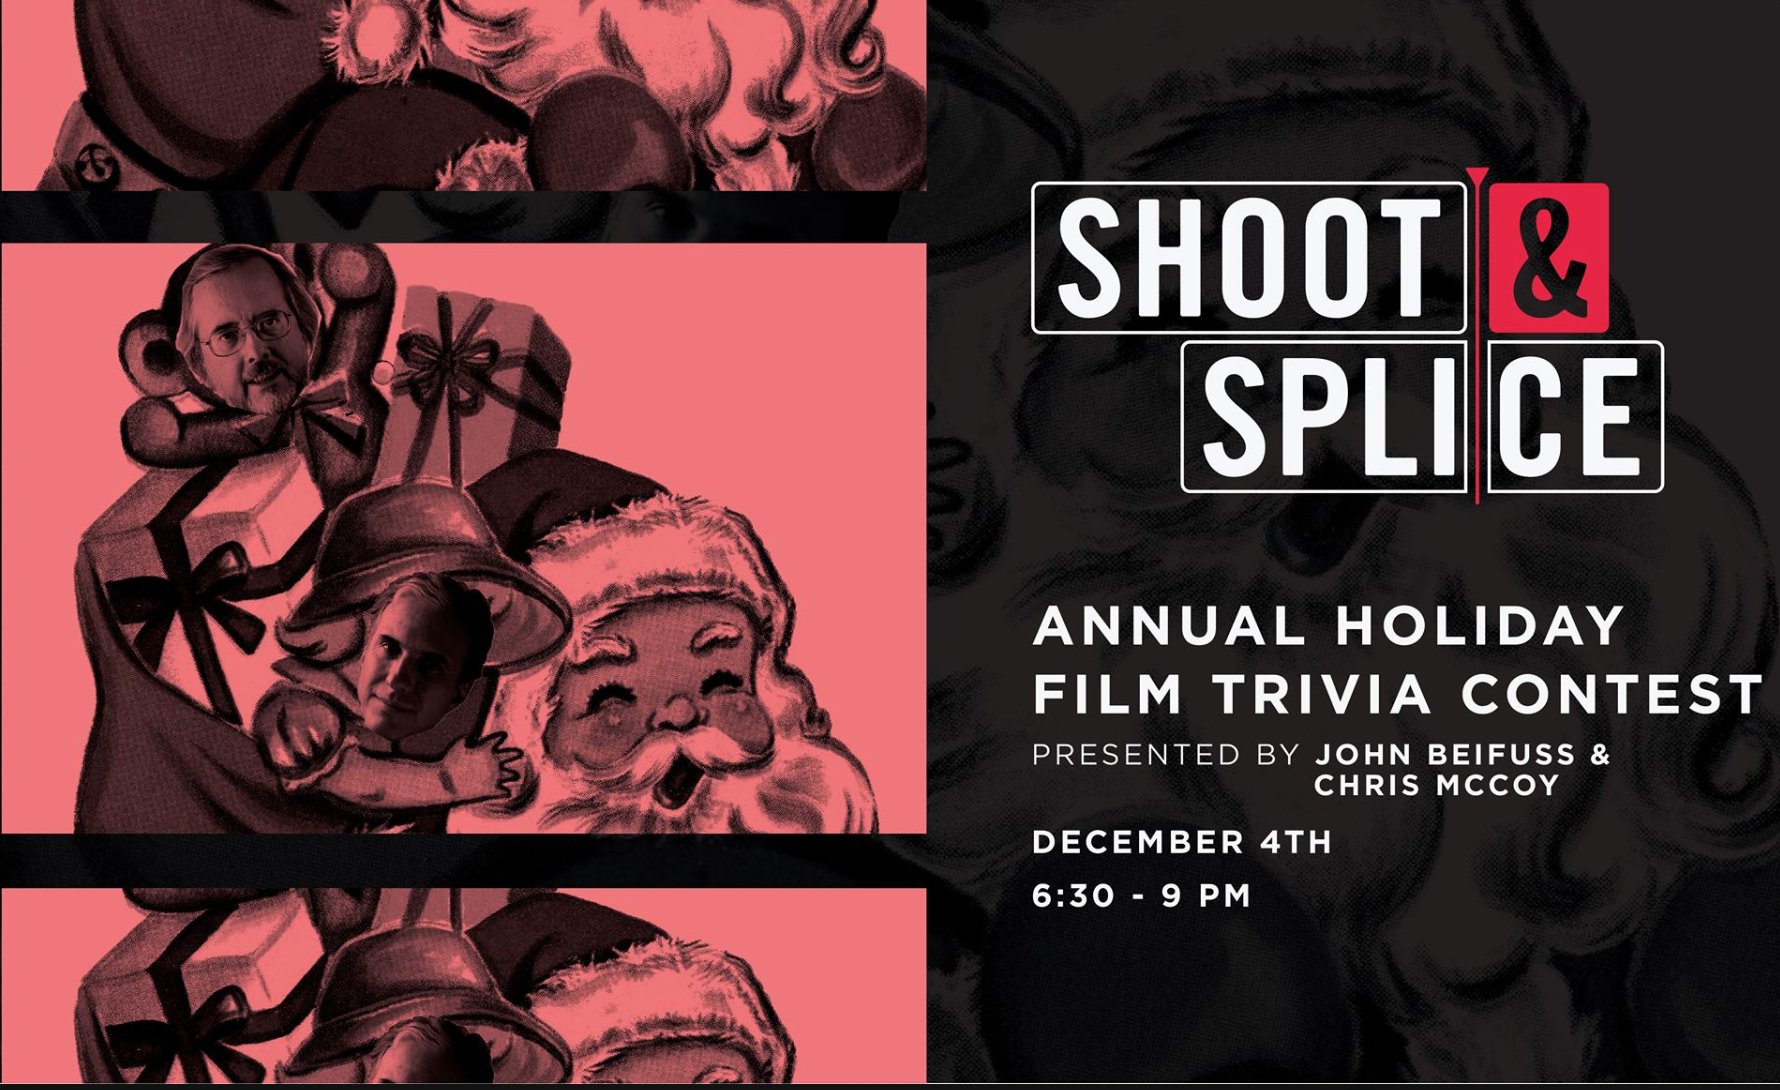 This Week At The Cinema: Movie Trivia, Jookin, and White Christmas